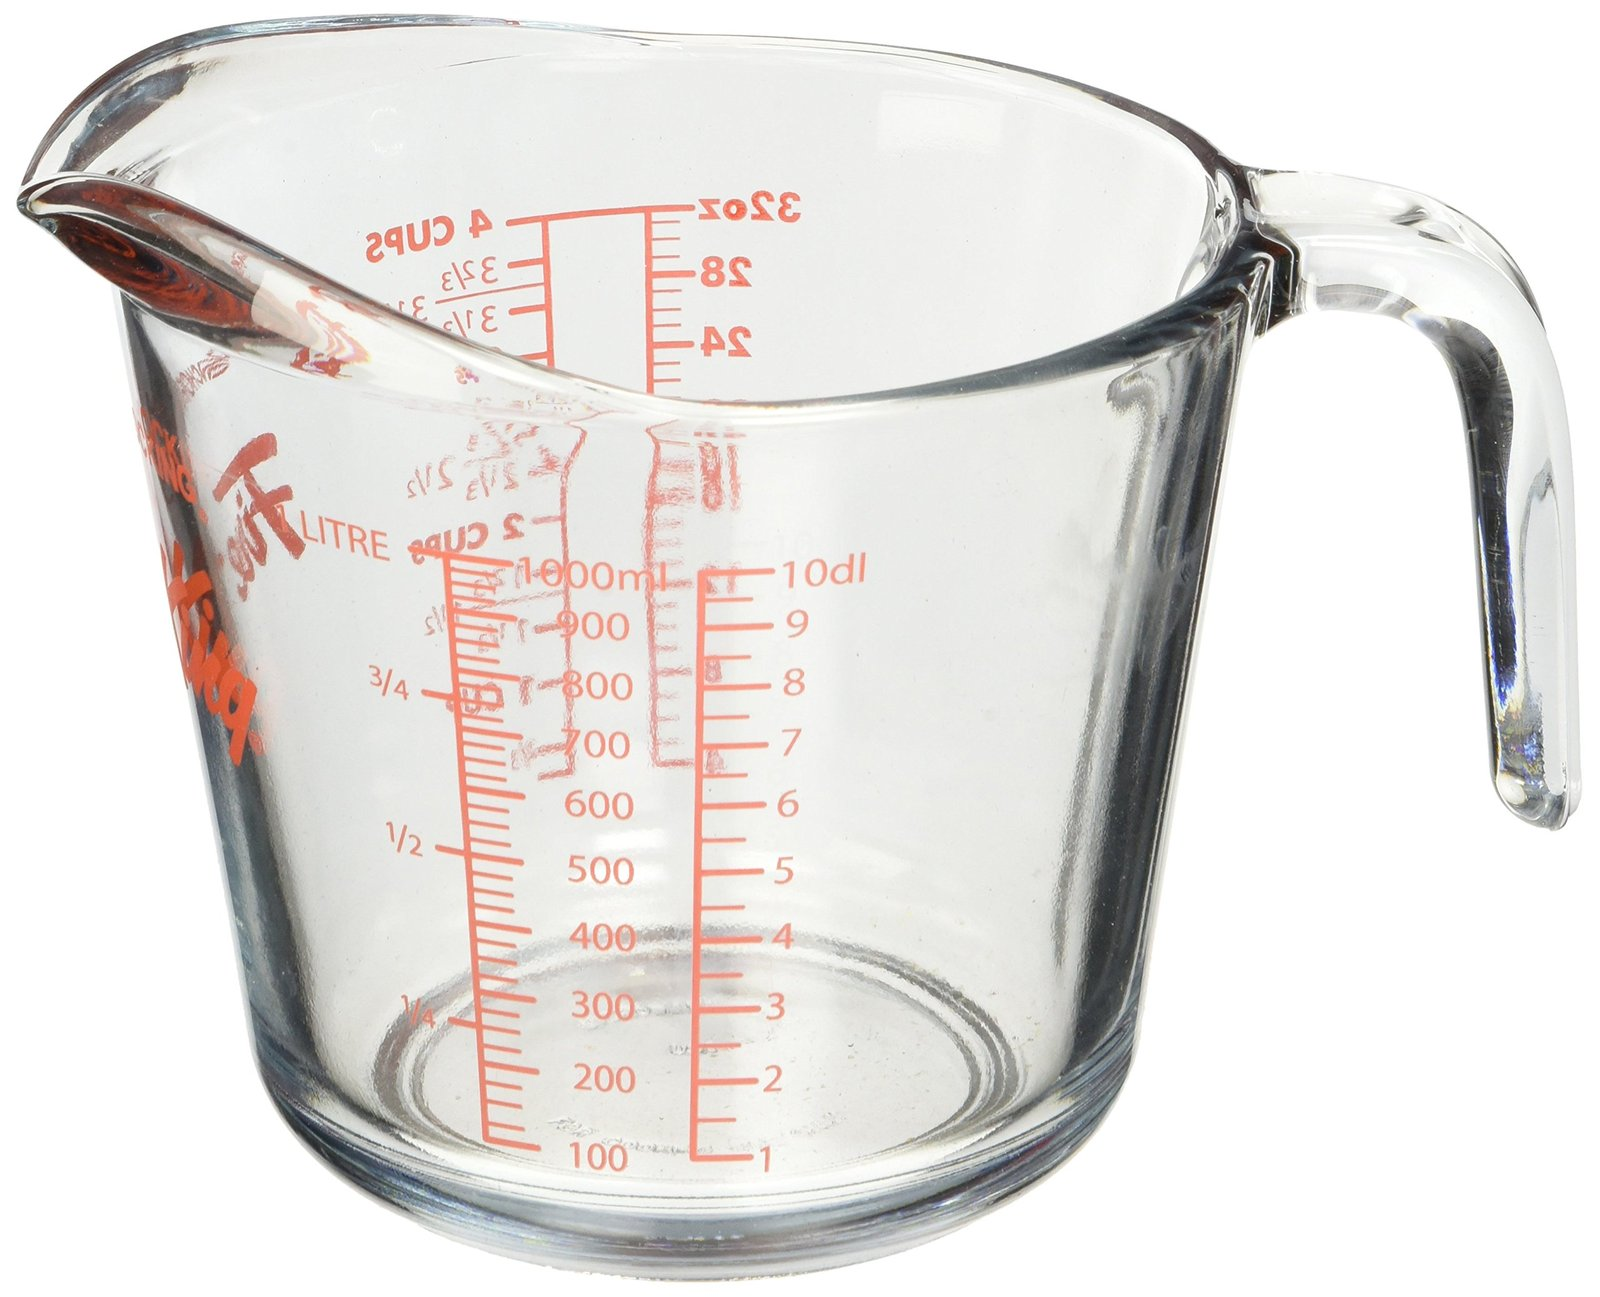 Anchor Hocking Measuring Cup, 4 Cup Capacity - $29.95